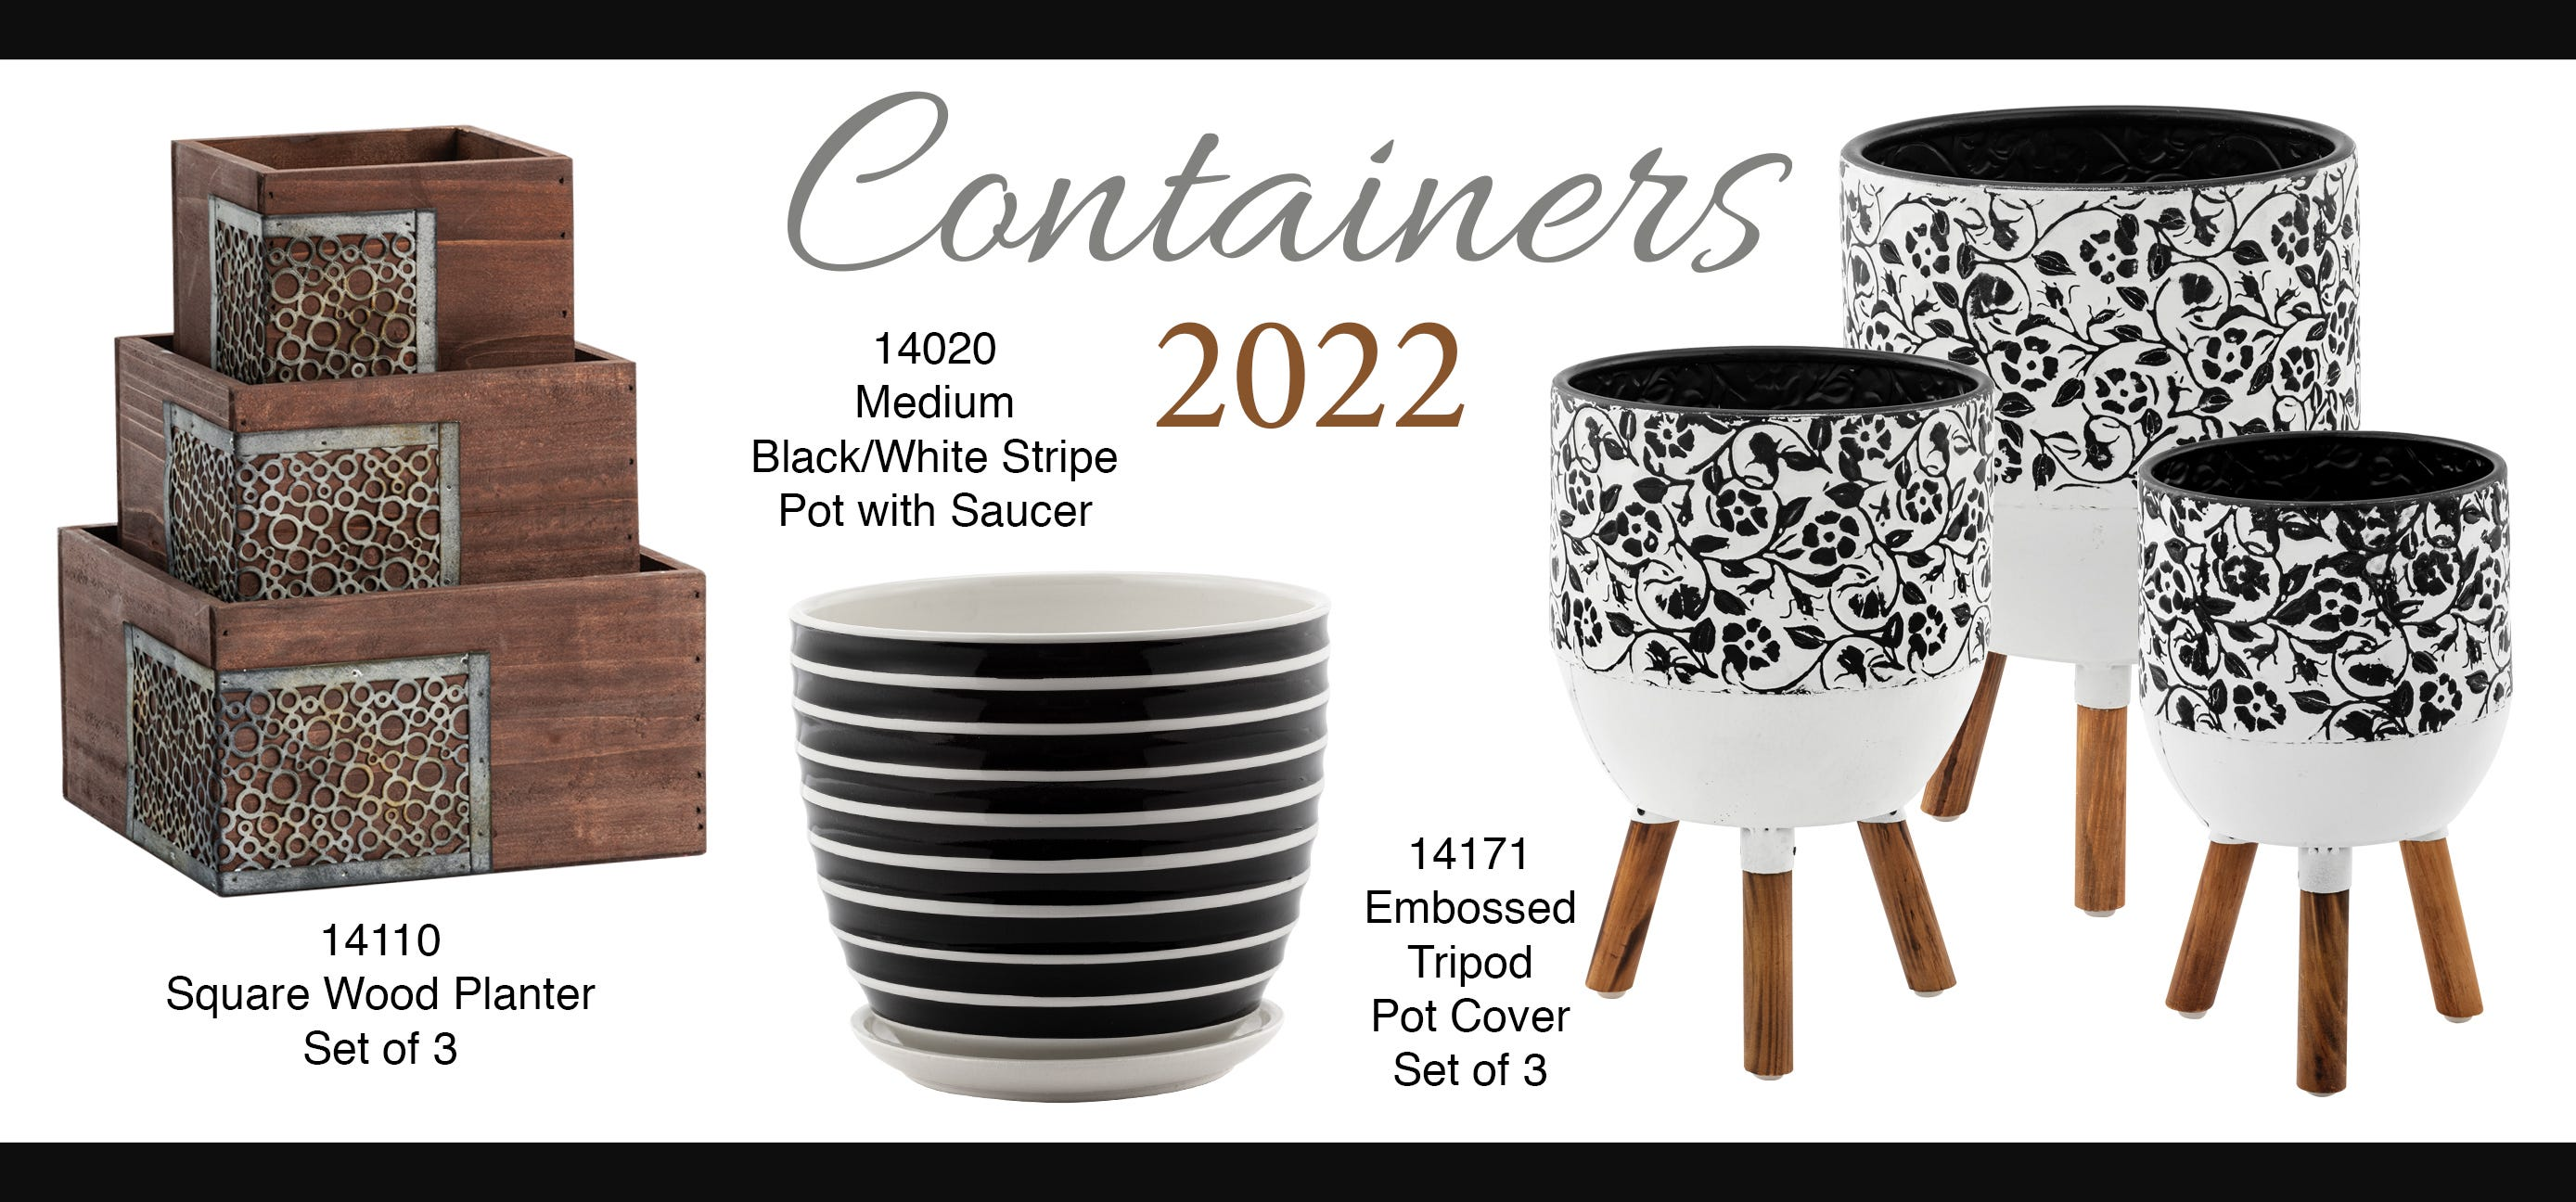 Containers 2022